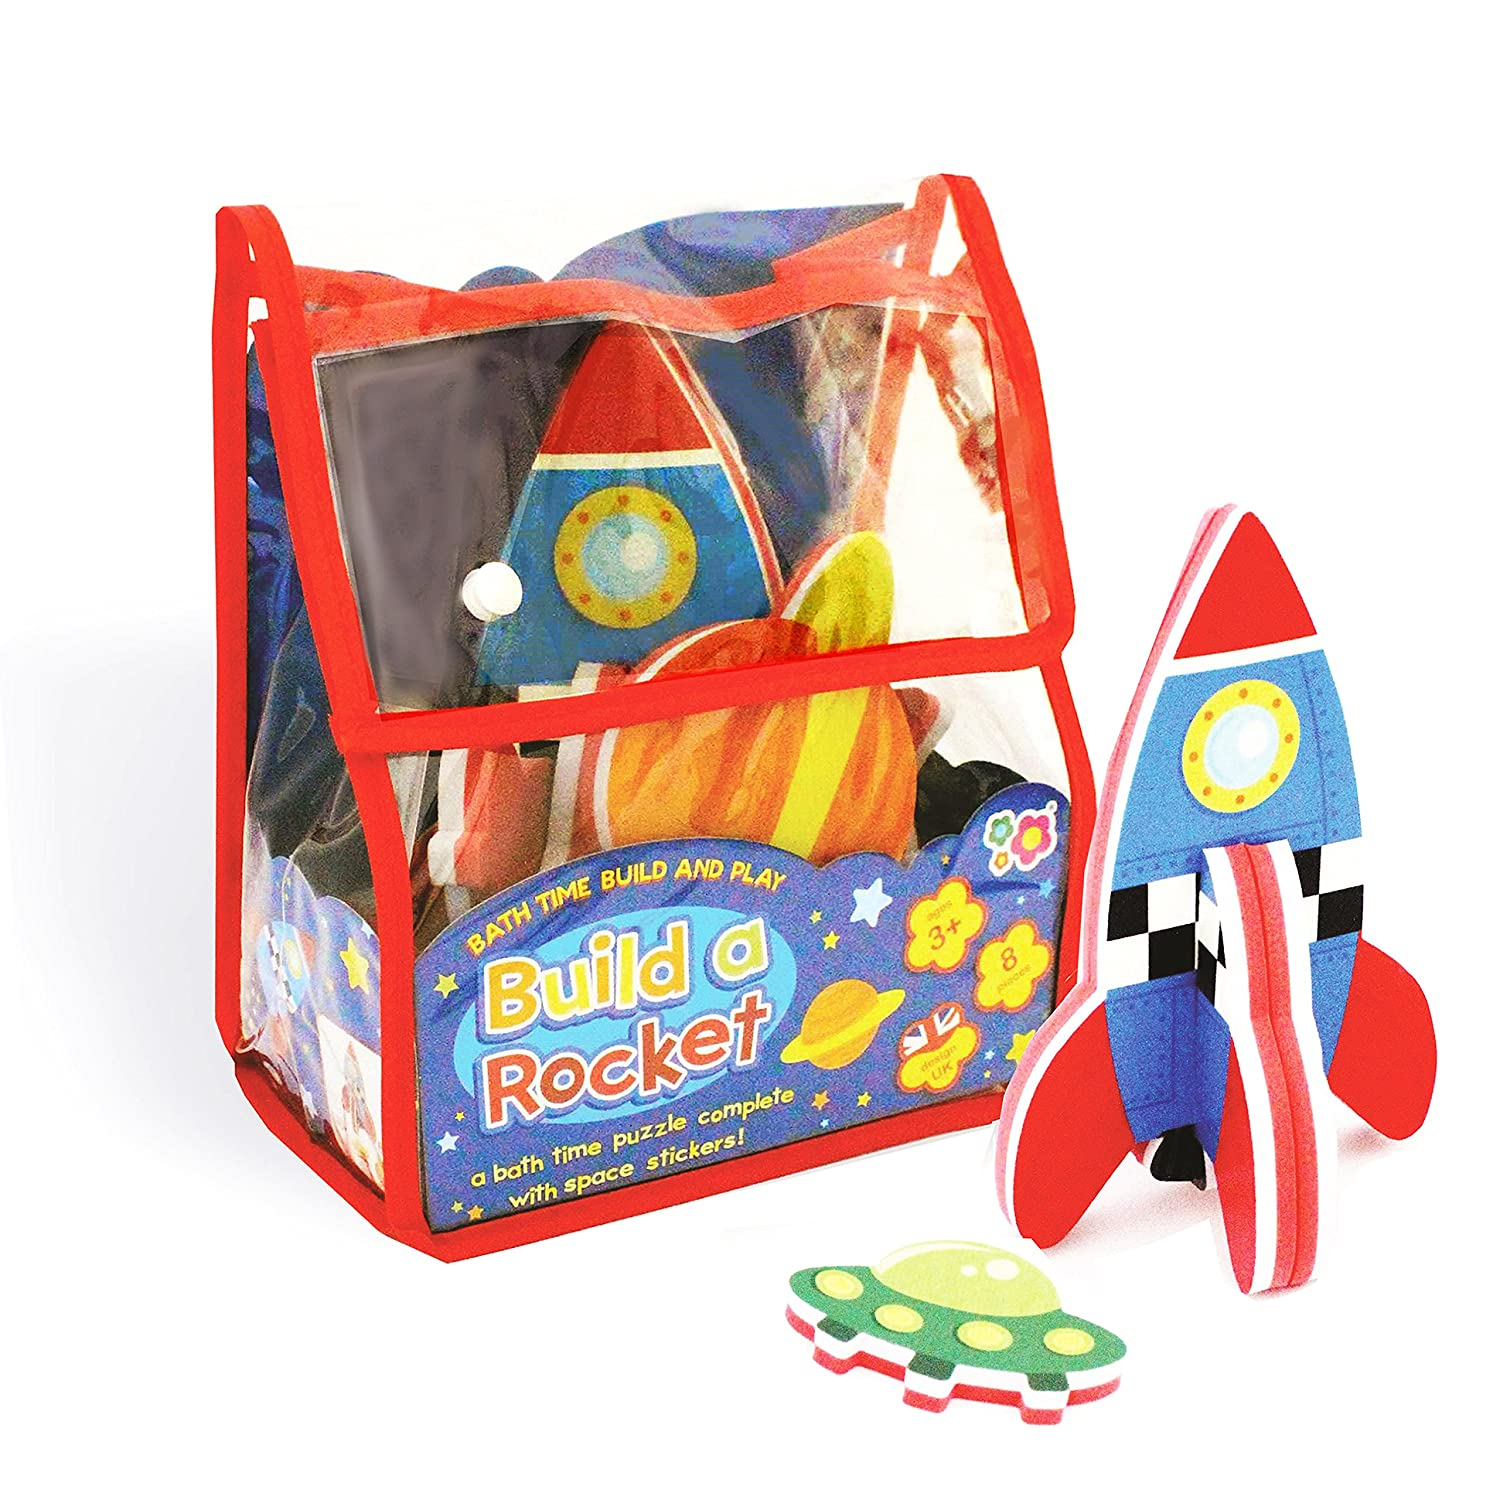 Meadow Kids Build a Rocket Bath Toy Meadow Kids Amazon